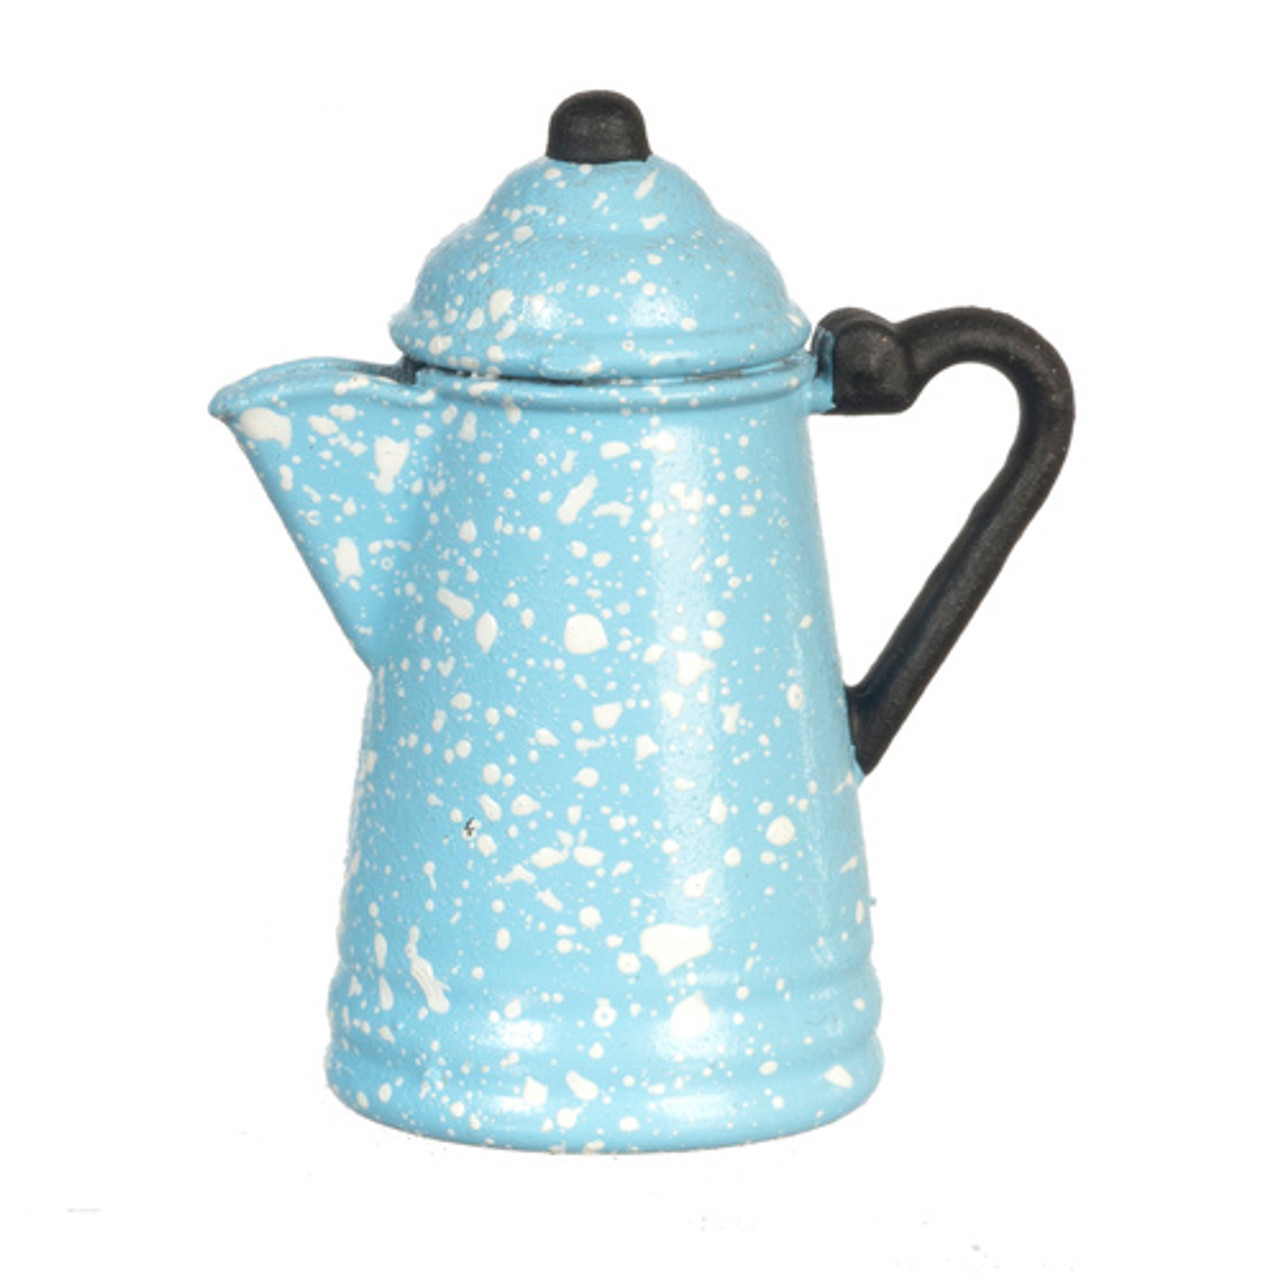 Coffee pot - Blue and White